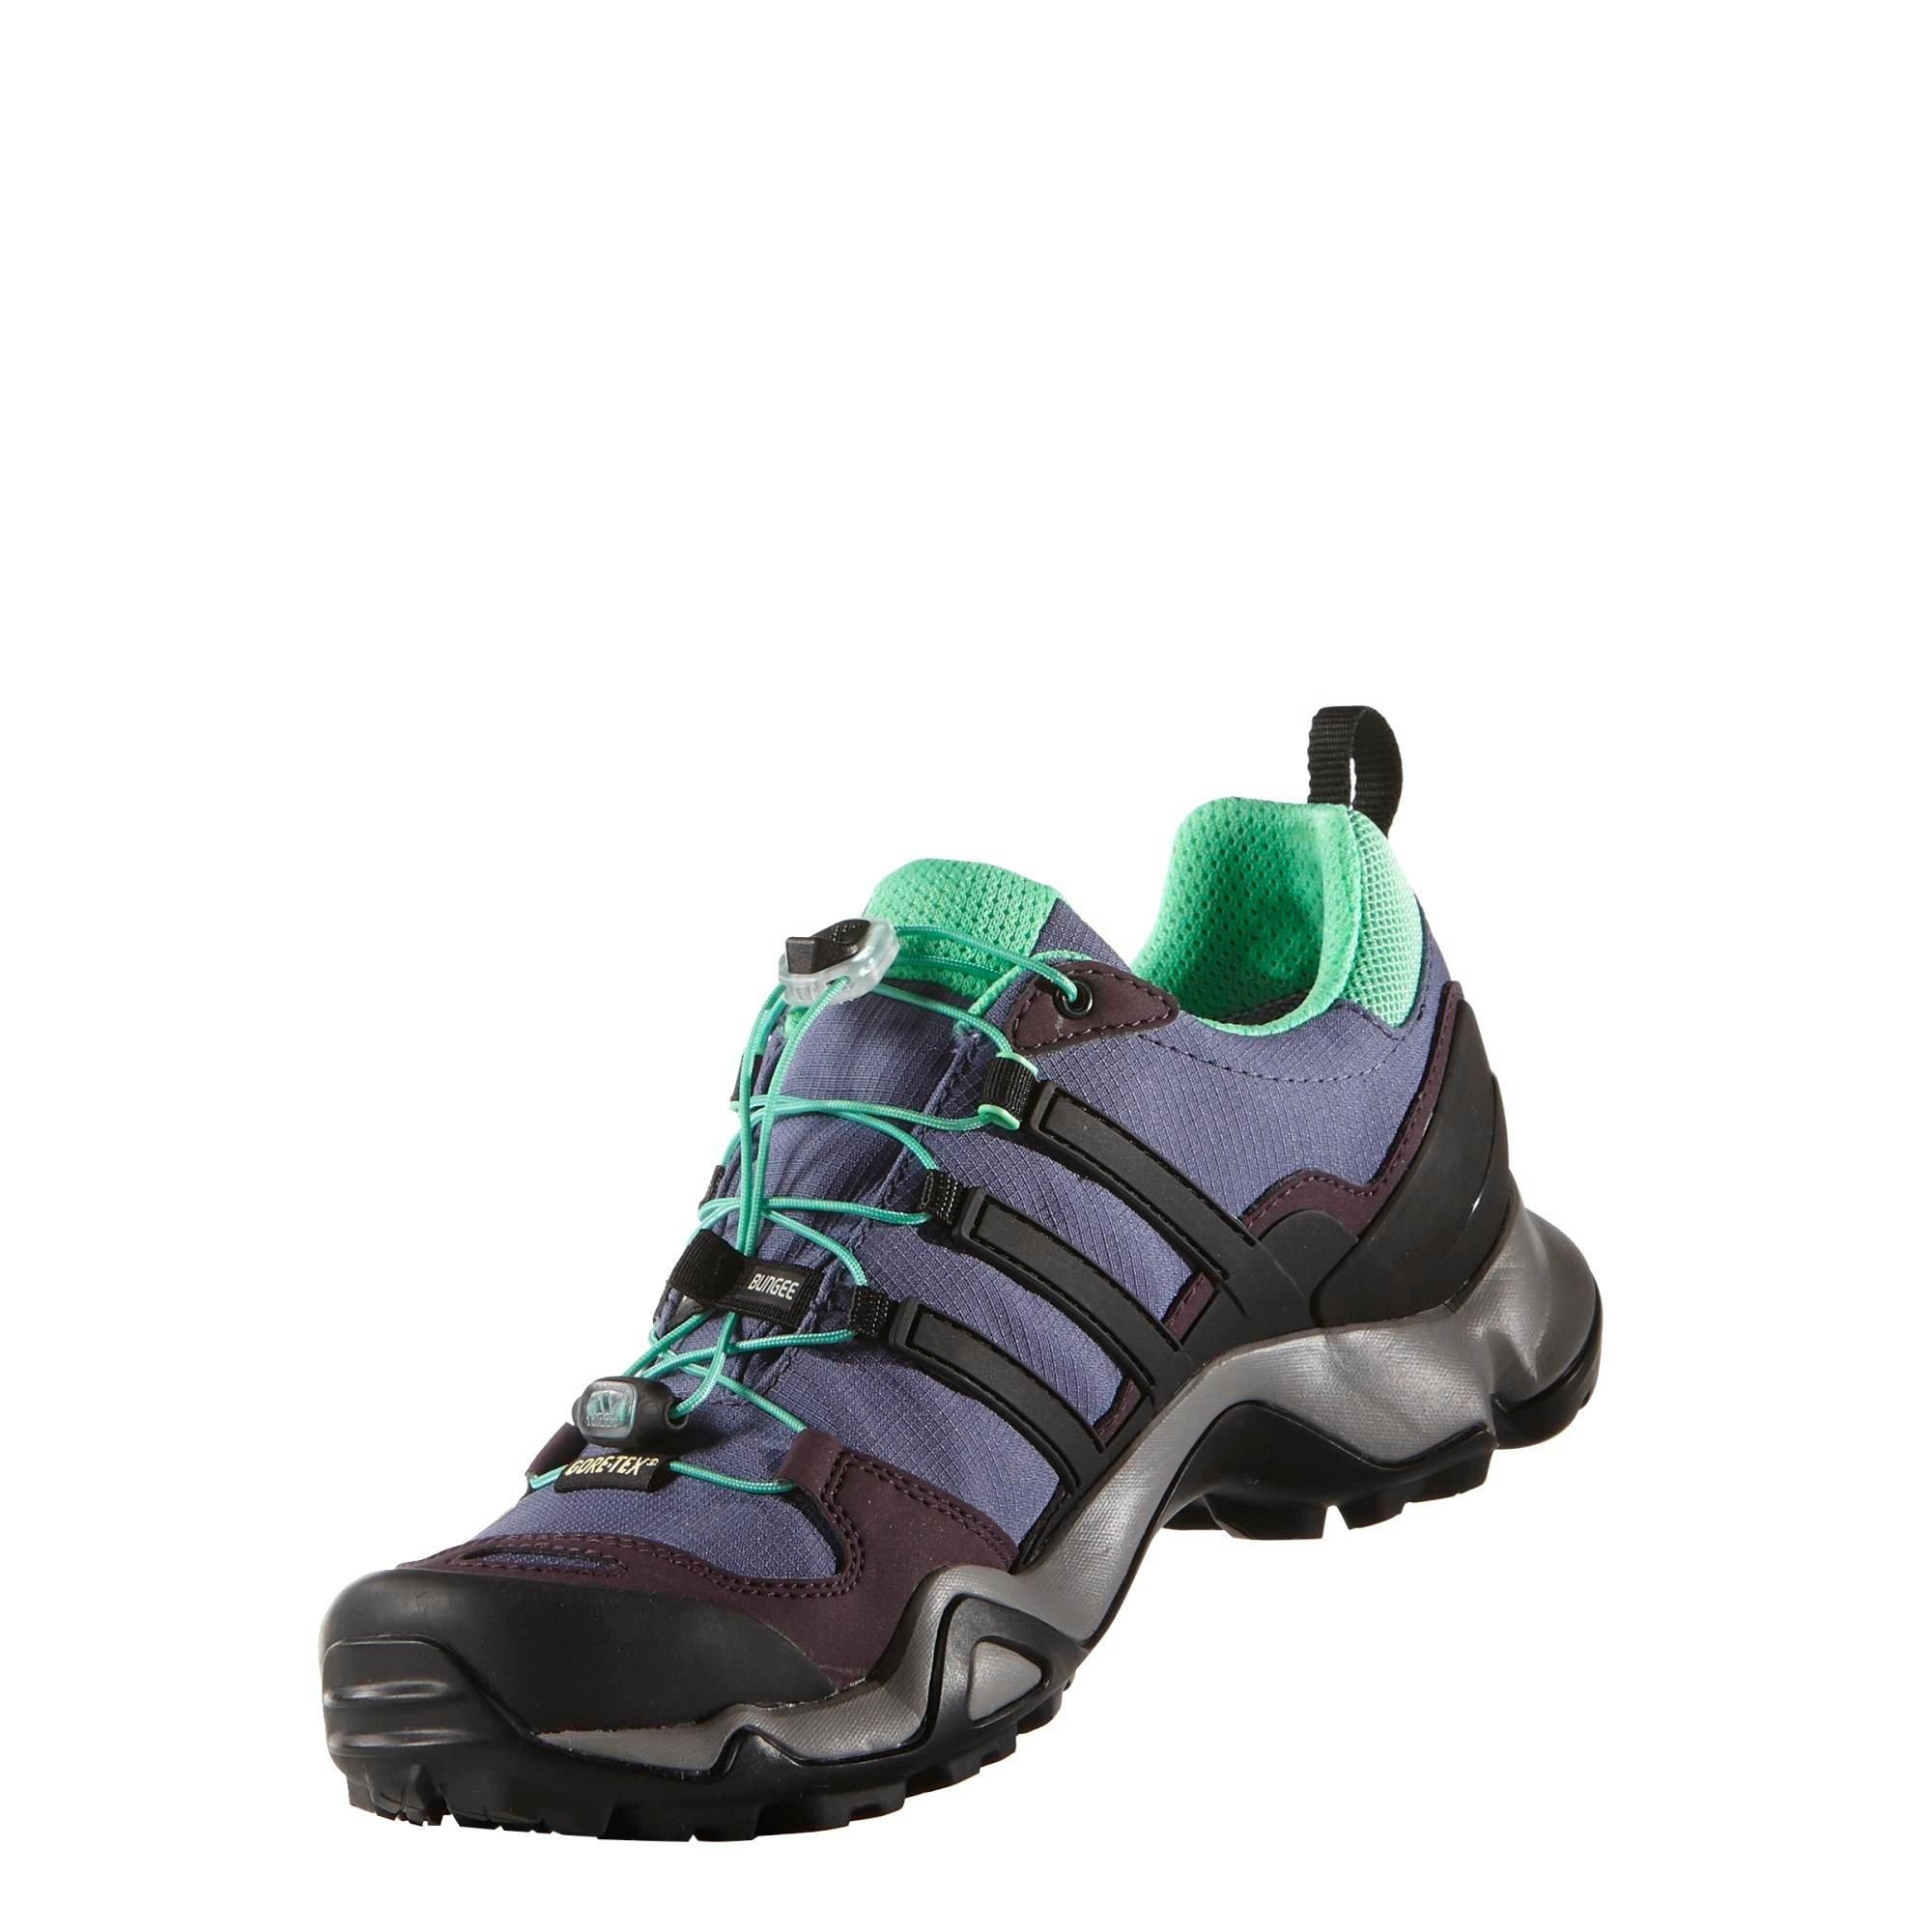 ddd97936a A lightweight yet waterproof and tough approach shoe from Addidas